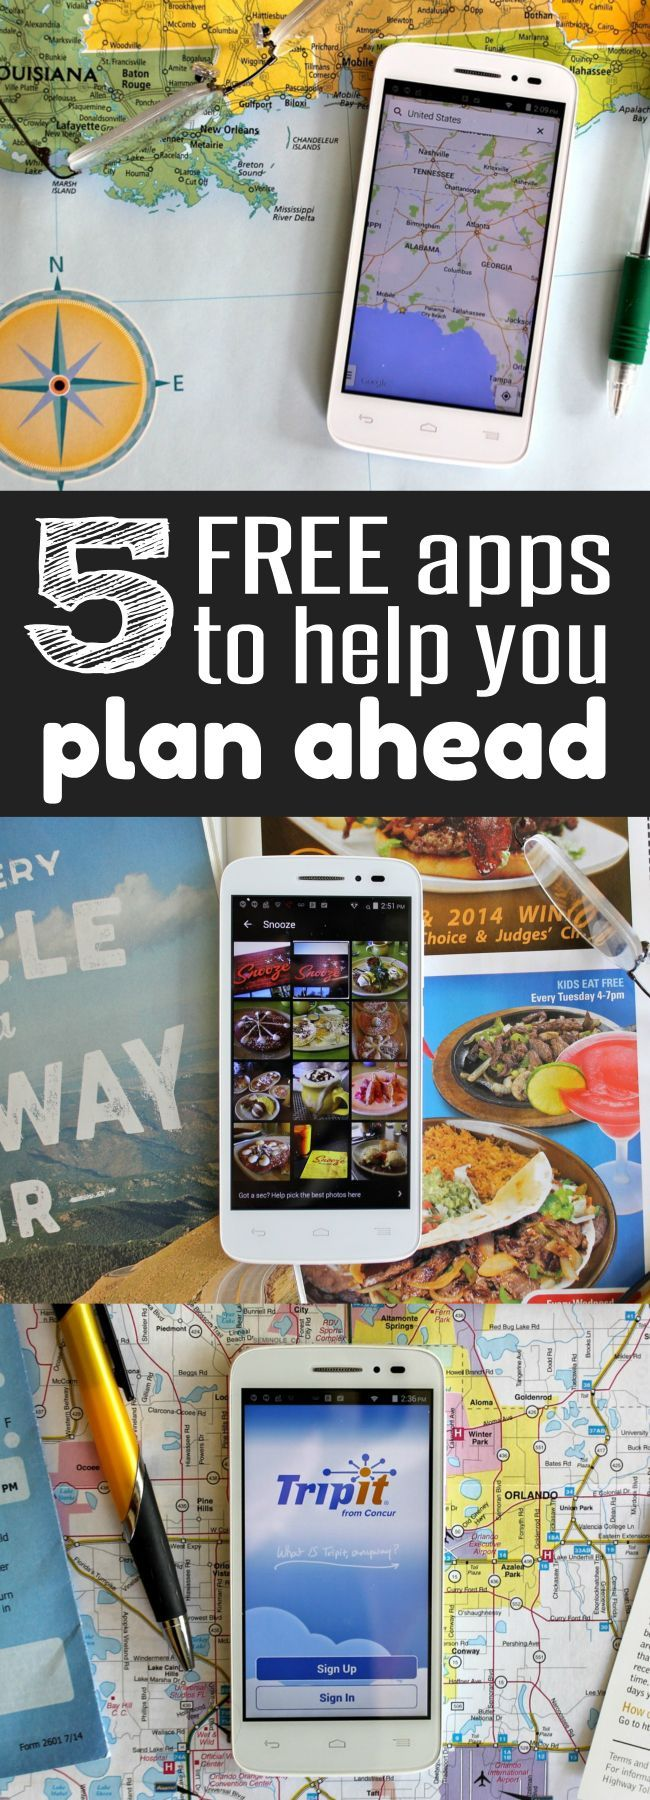 Need a FREE calendar, planning tools, weather alert system and PDA These 5 Free apps to help you plan ahead help you get organized